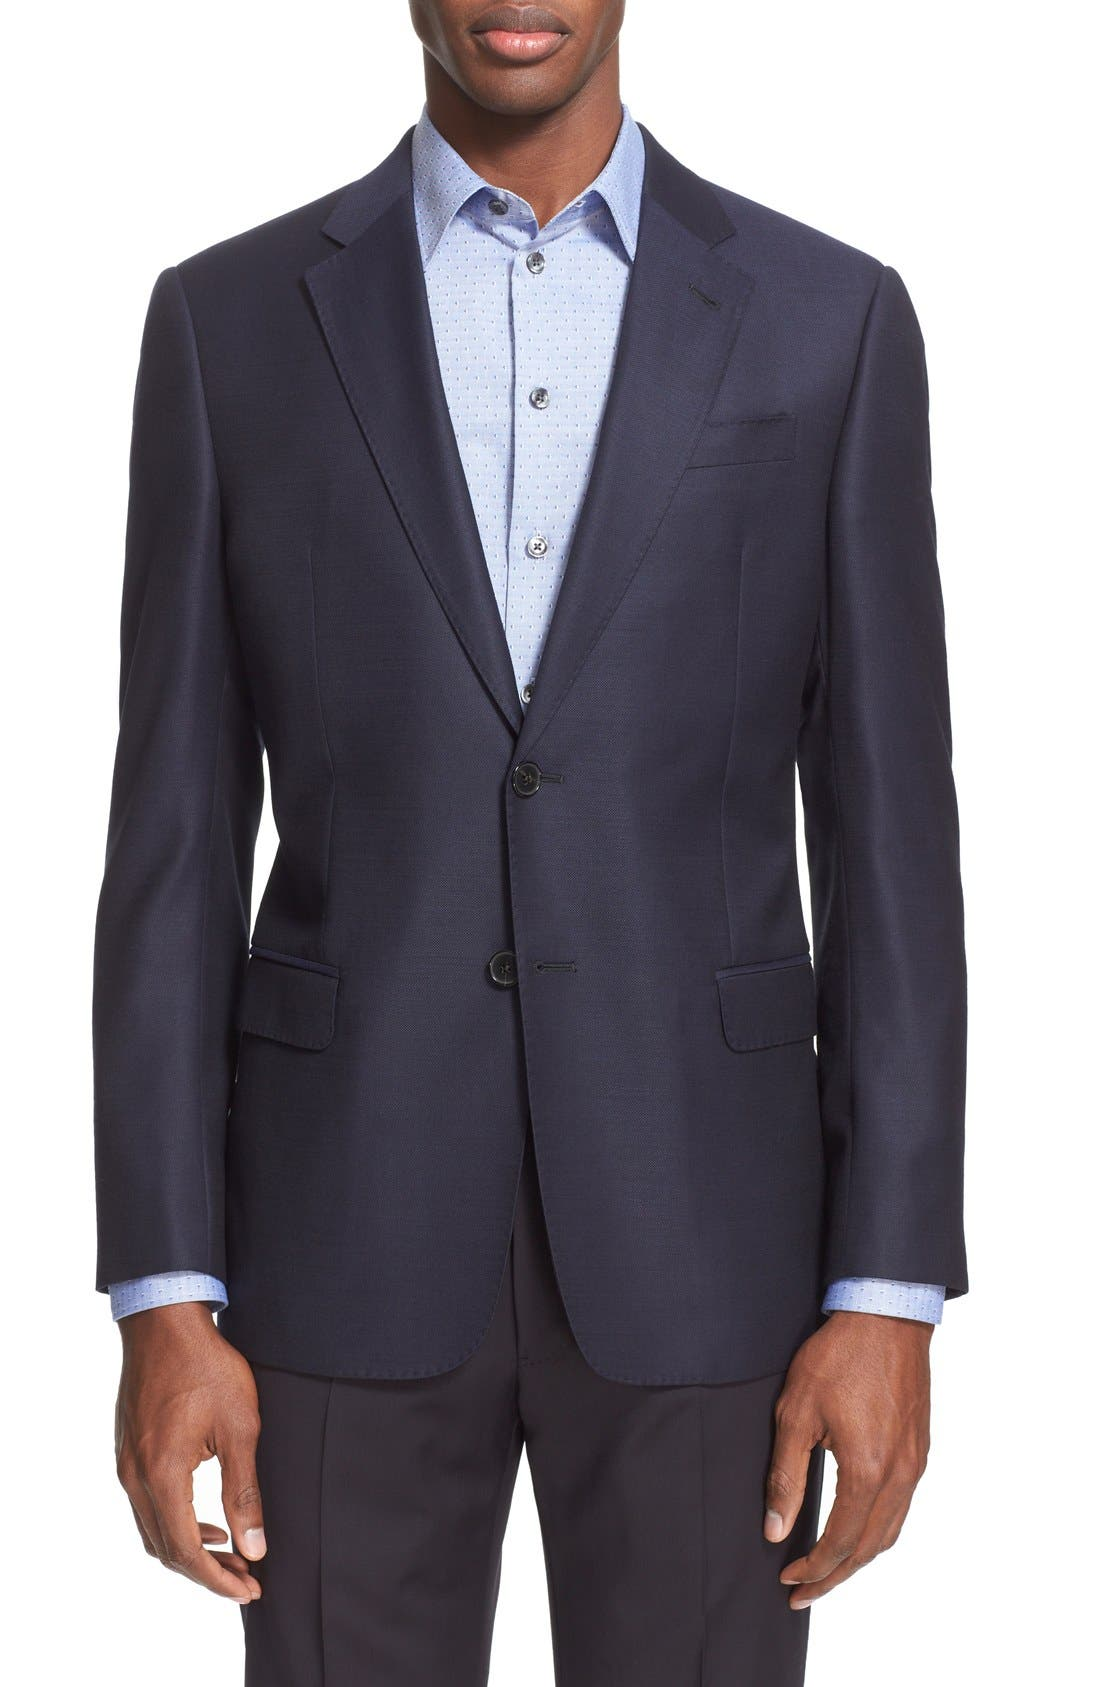 Alternate Image 1 Selected - Armani Collezioni G-Line Trim Fit Wool Blazer